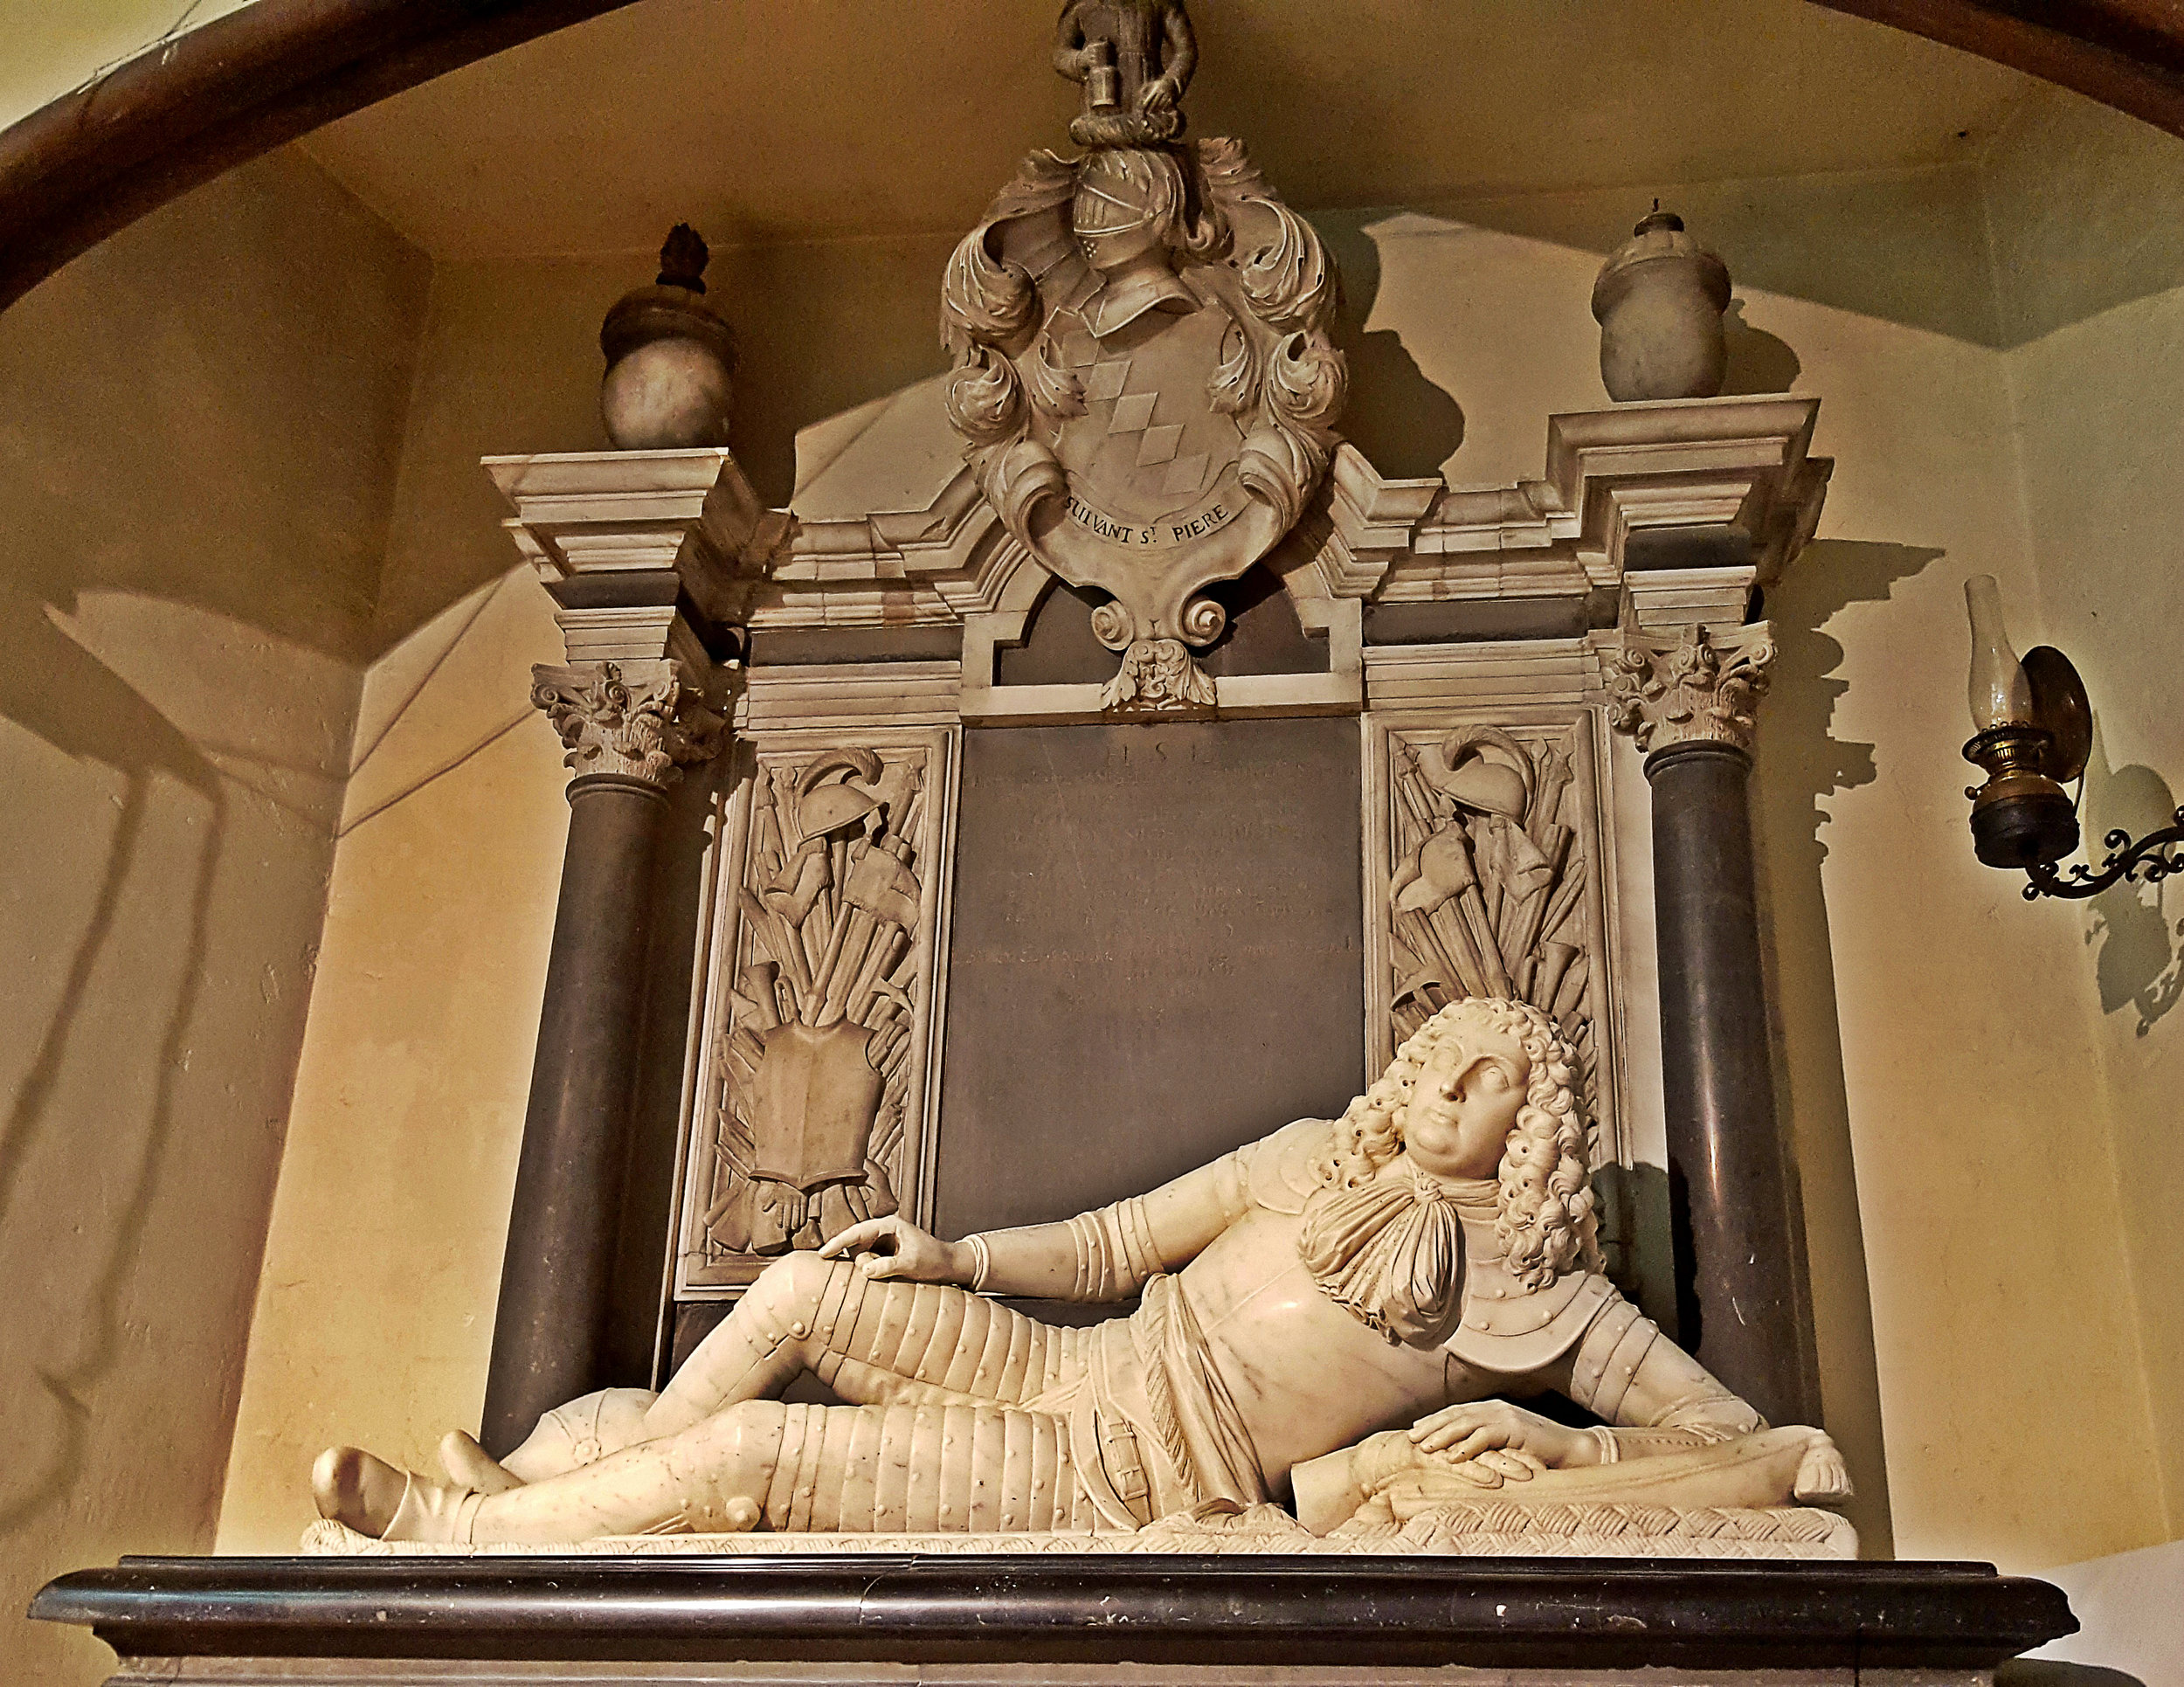 Sir Richard Knight (1639 - 1679) reclines in Chawton Church